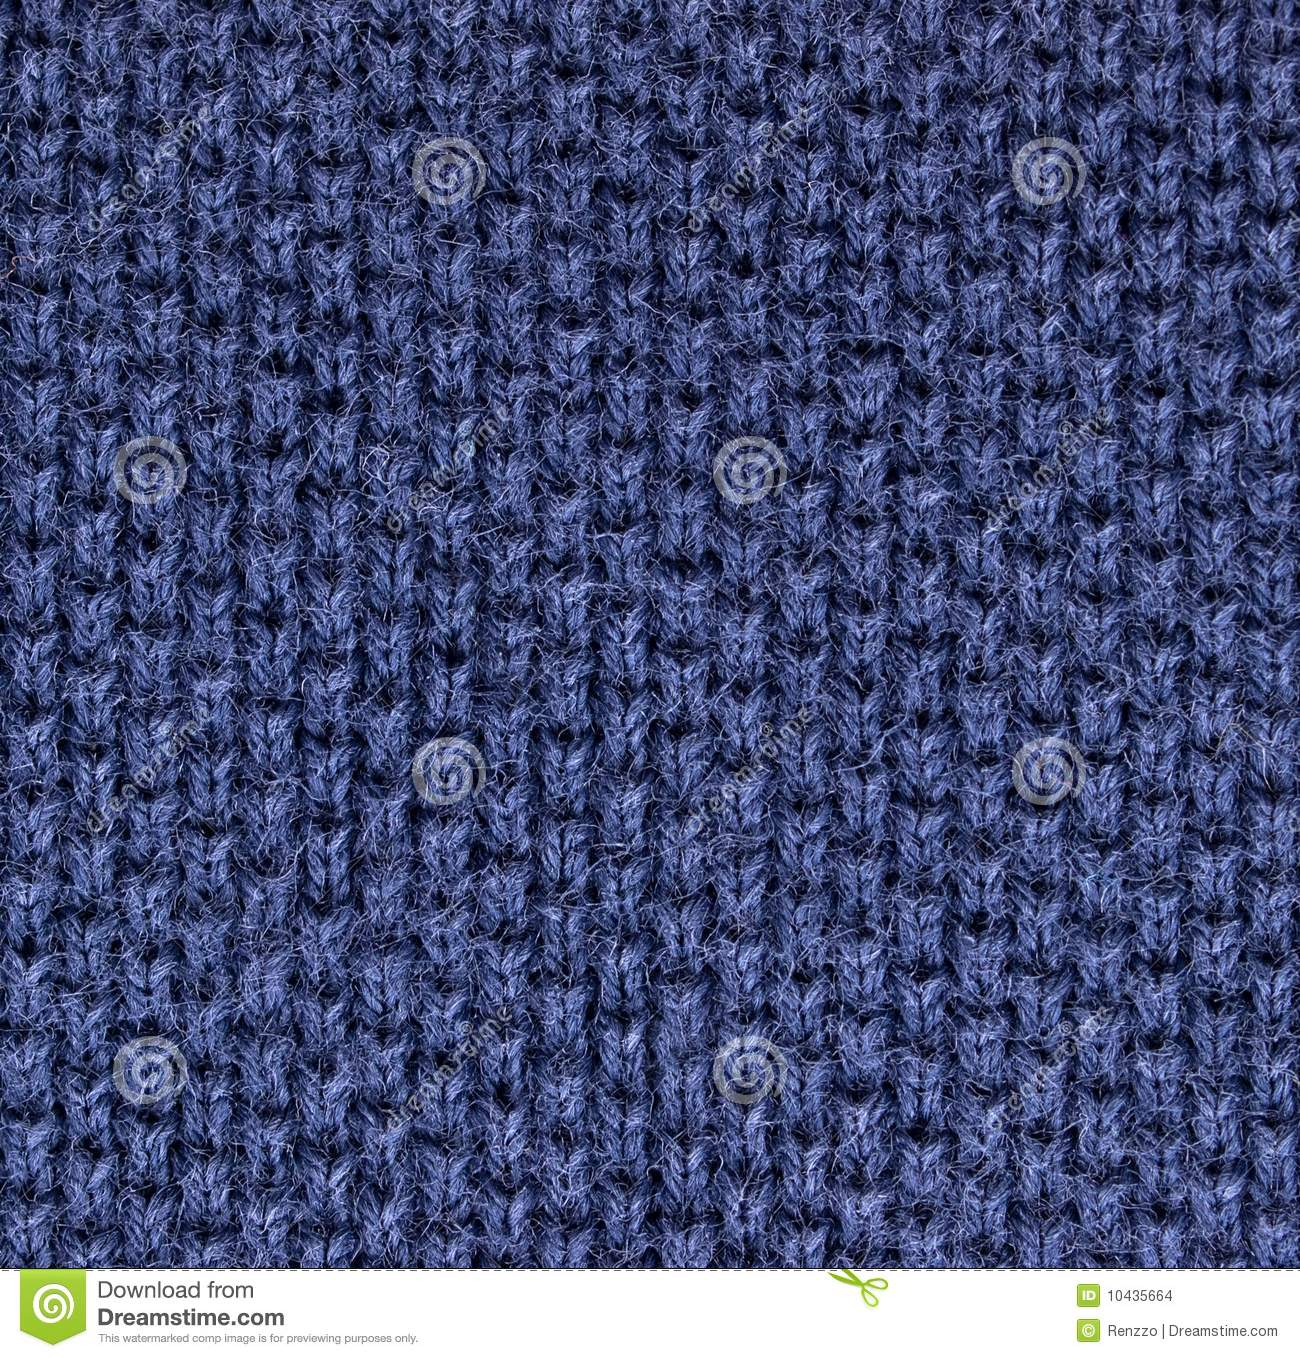 High Magnification Polo Shirt Fabric Knit Texture Stock